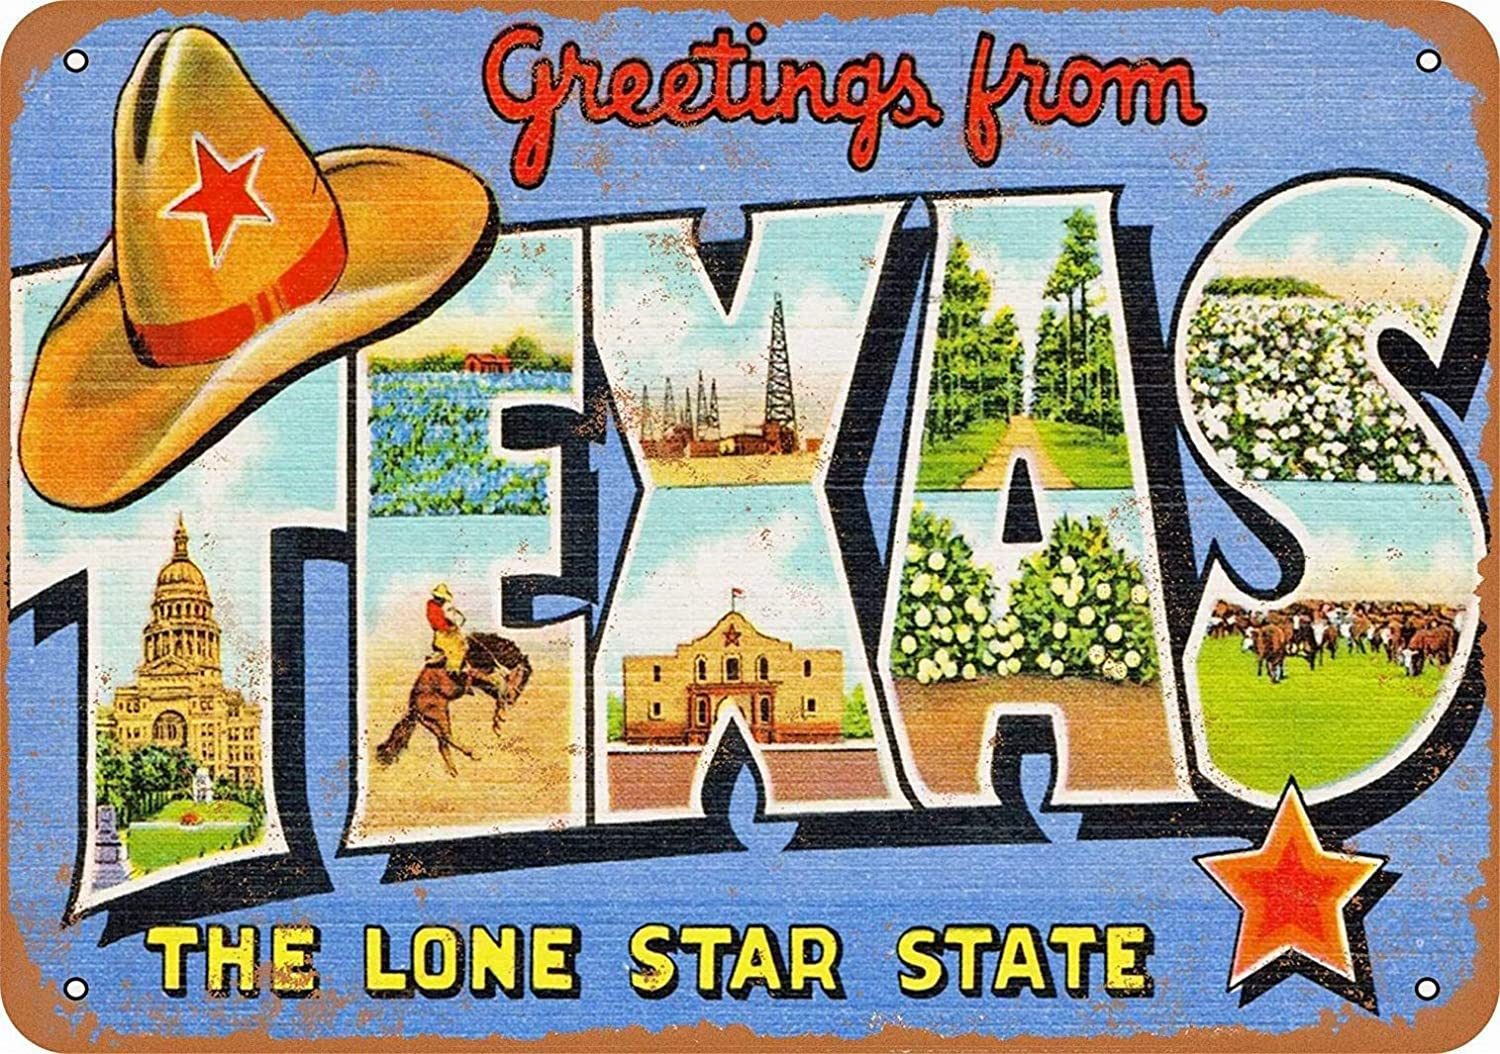 NOT Texas tin Sign Wall Iron Painting Retro Plaque Decoration Metal Poster Art Gift Warning Sign for Family Warehouse Garden Shops Hotels etc